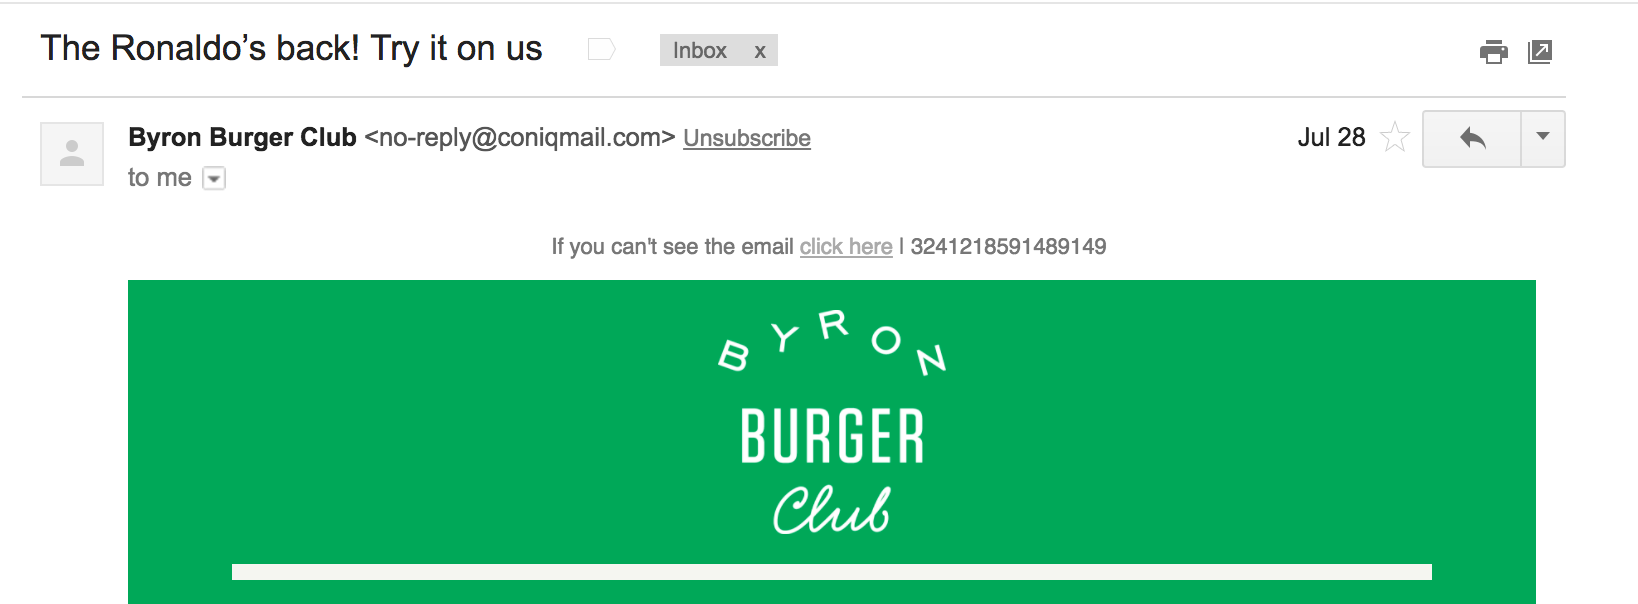 Byron Burger Club email subject example